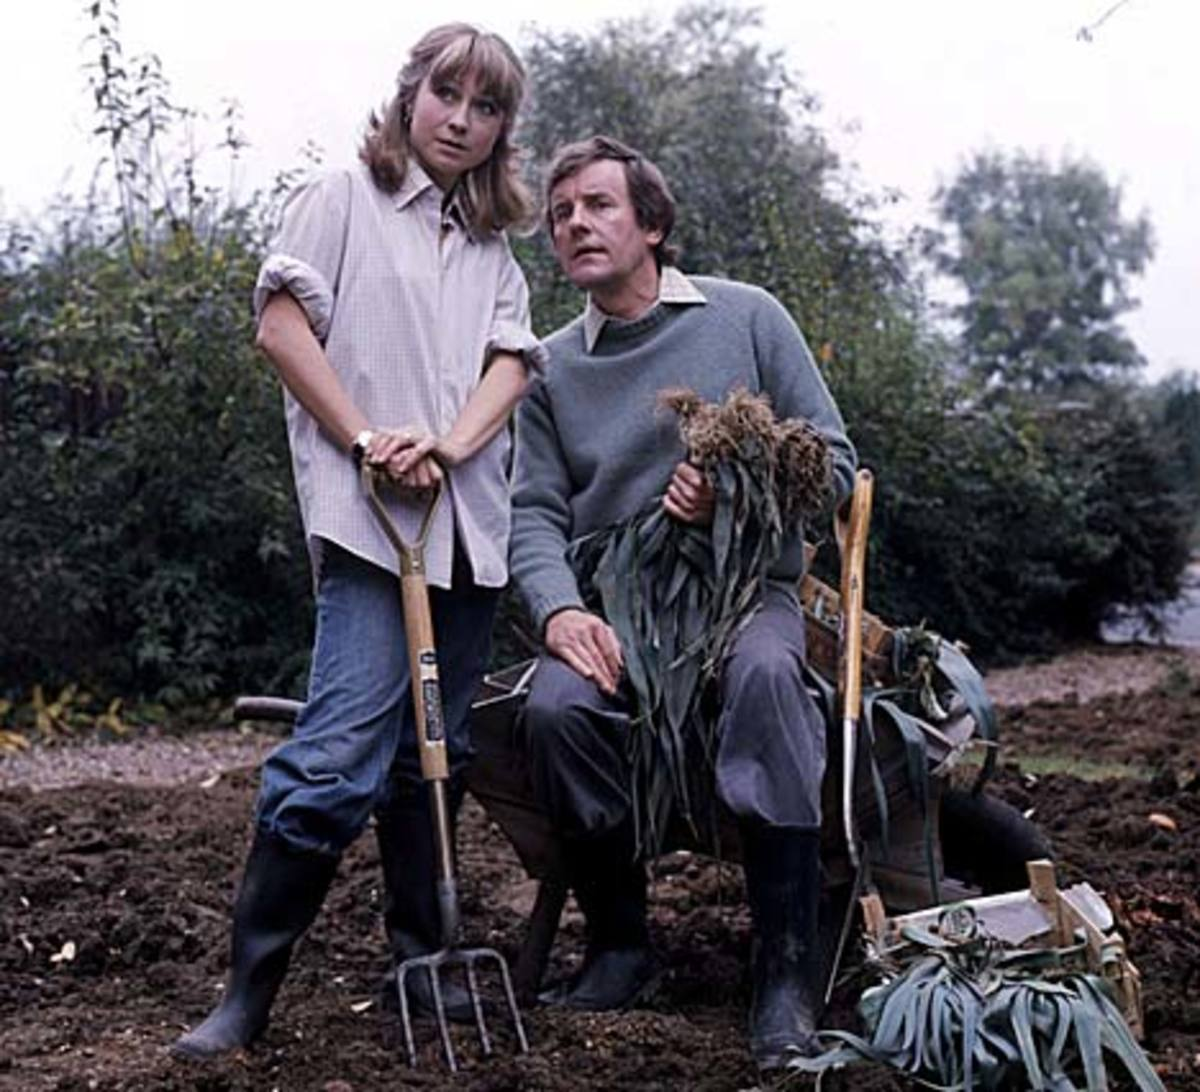 Barbara and Tom Good in their garden